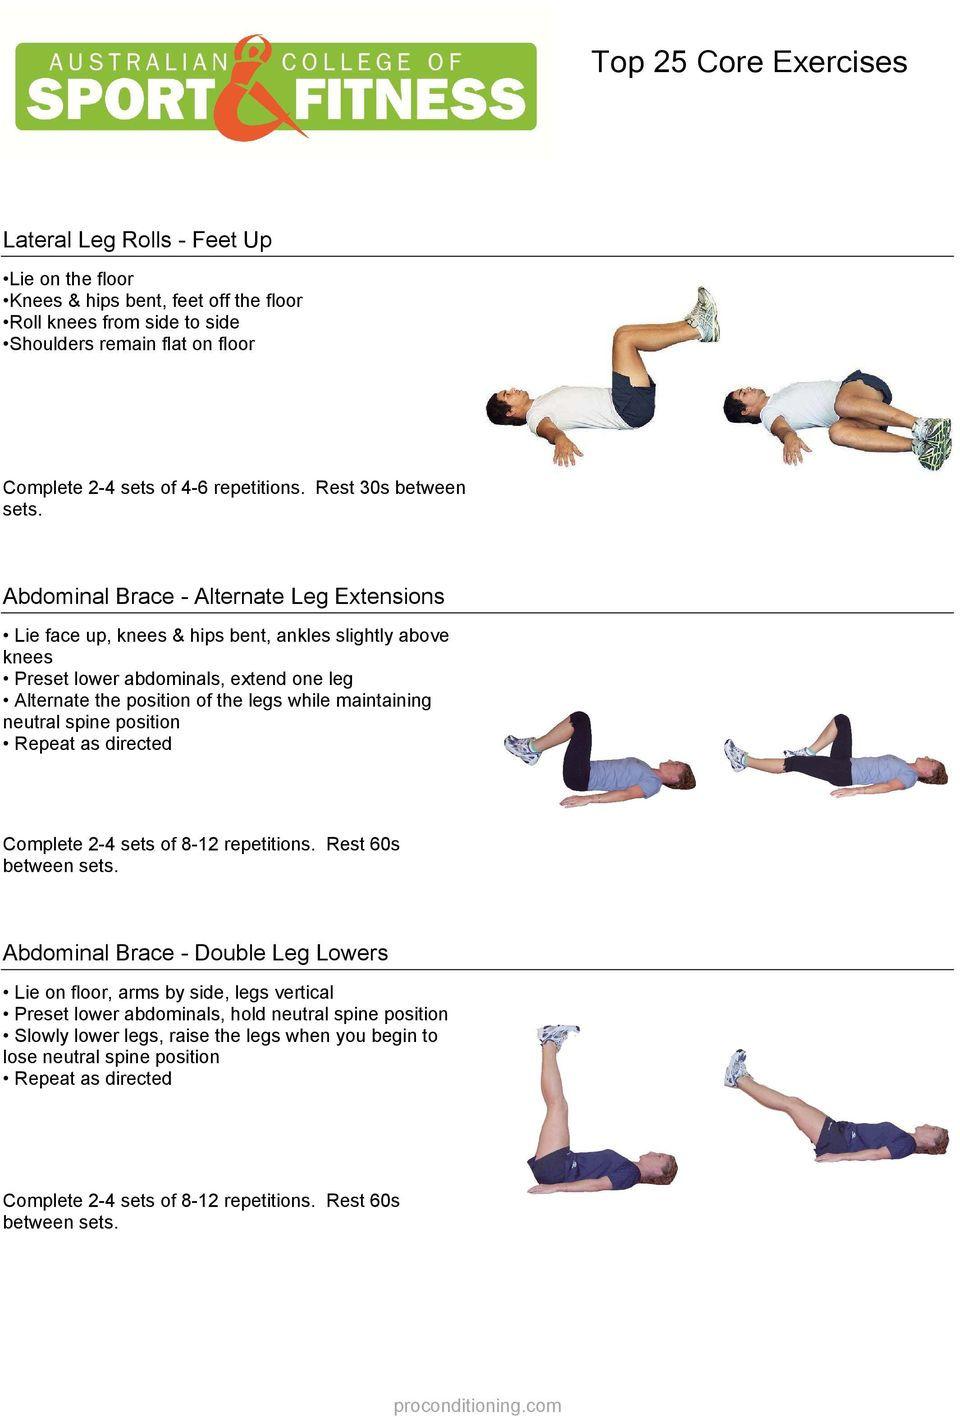 Abdominal Brace - Alternate Leg Extensions Lie face up, knees & hips bent, ankles slightly above knees Preset lower abdominals, extend one leg Alternate the position of the